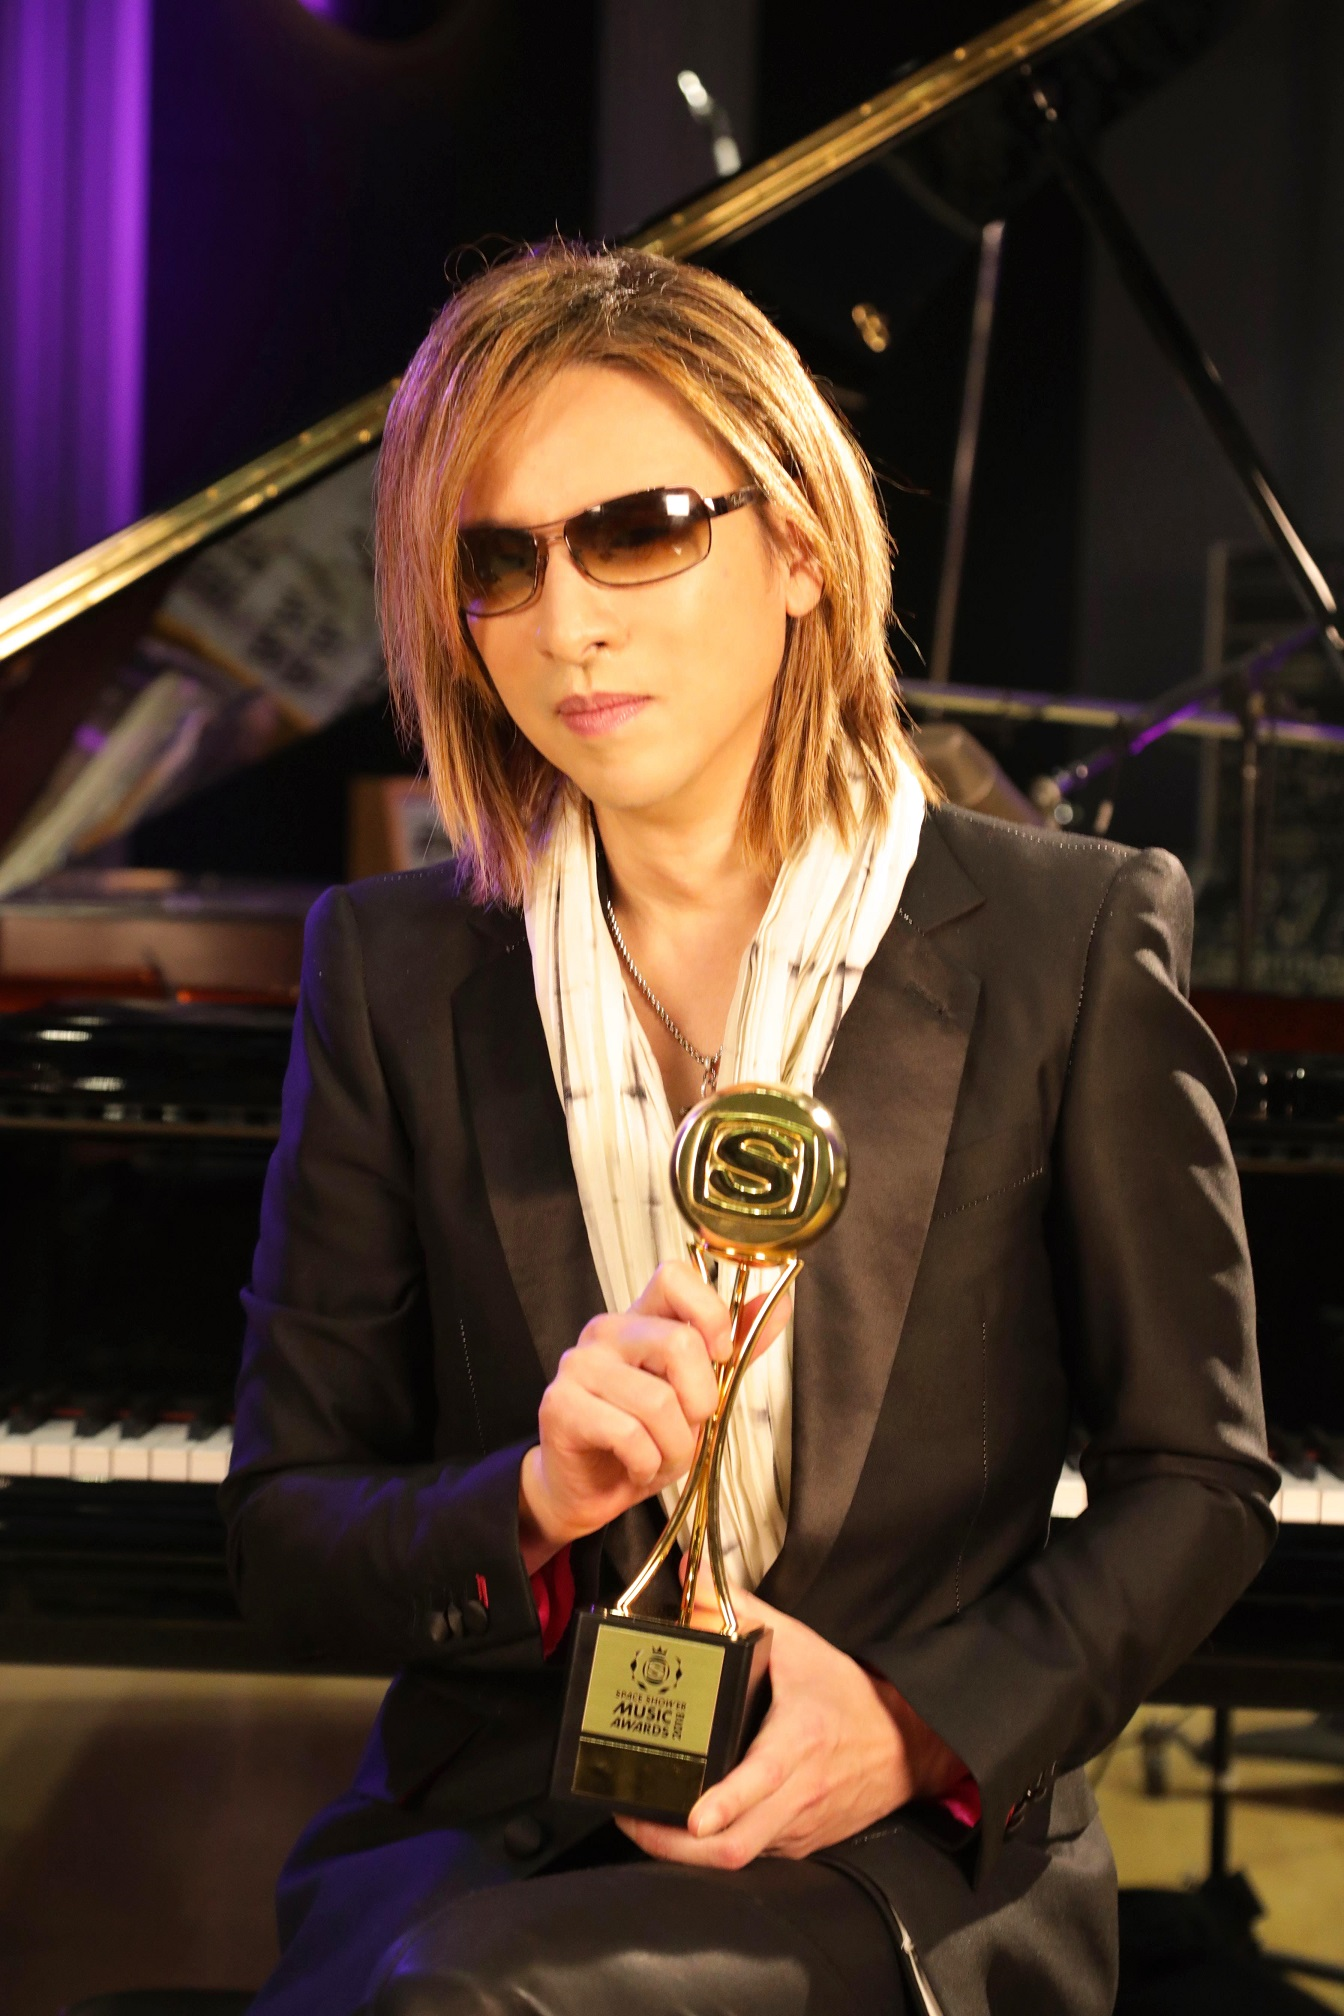 X-JAPAN - SPACE SHOWER MUSIC AWARDS 2018